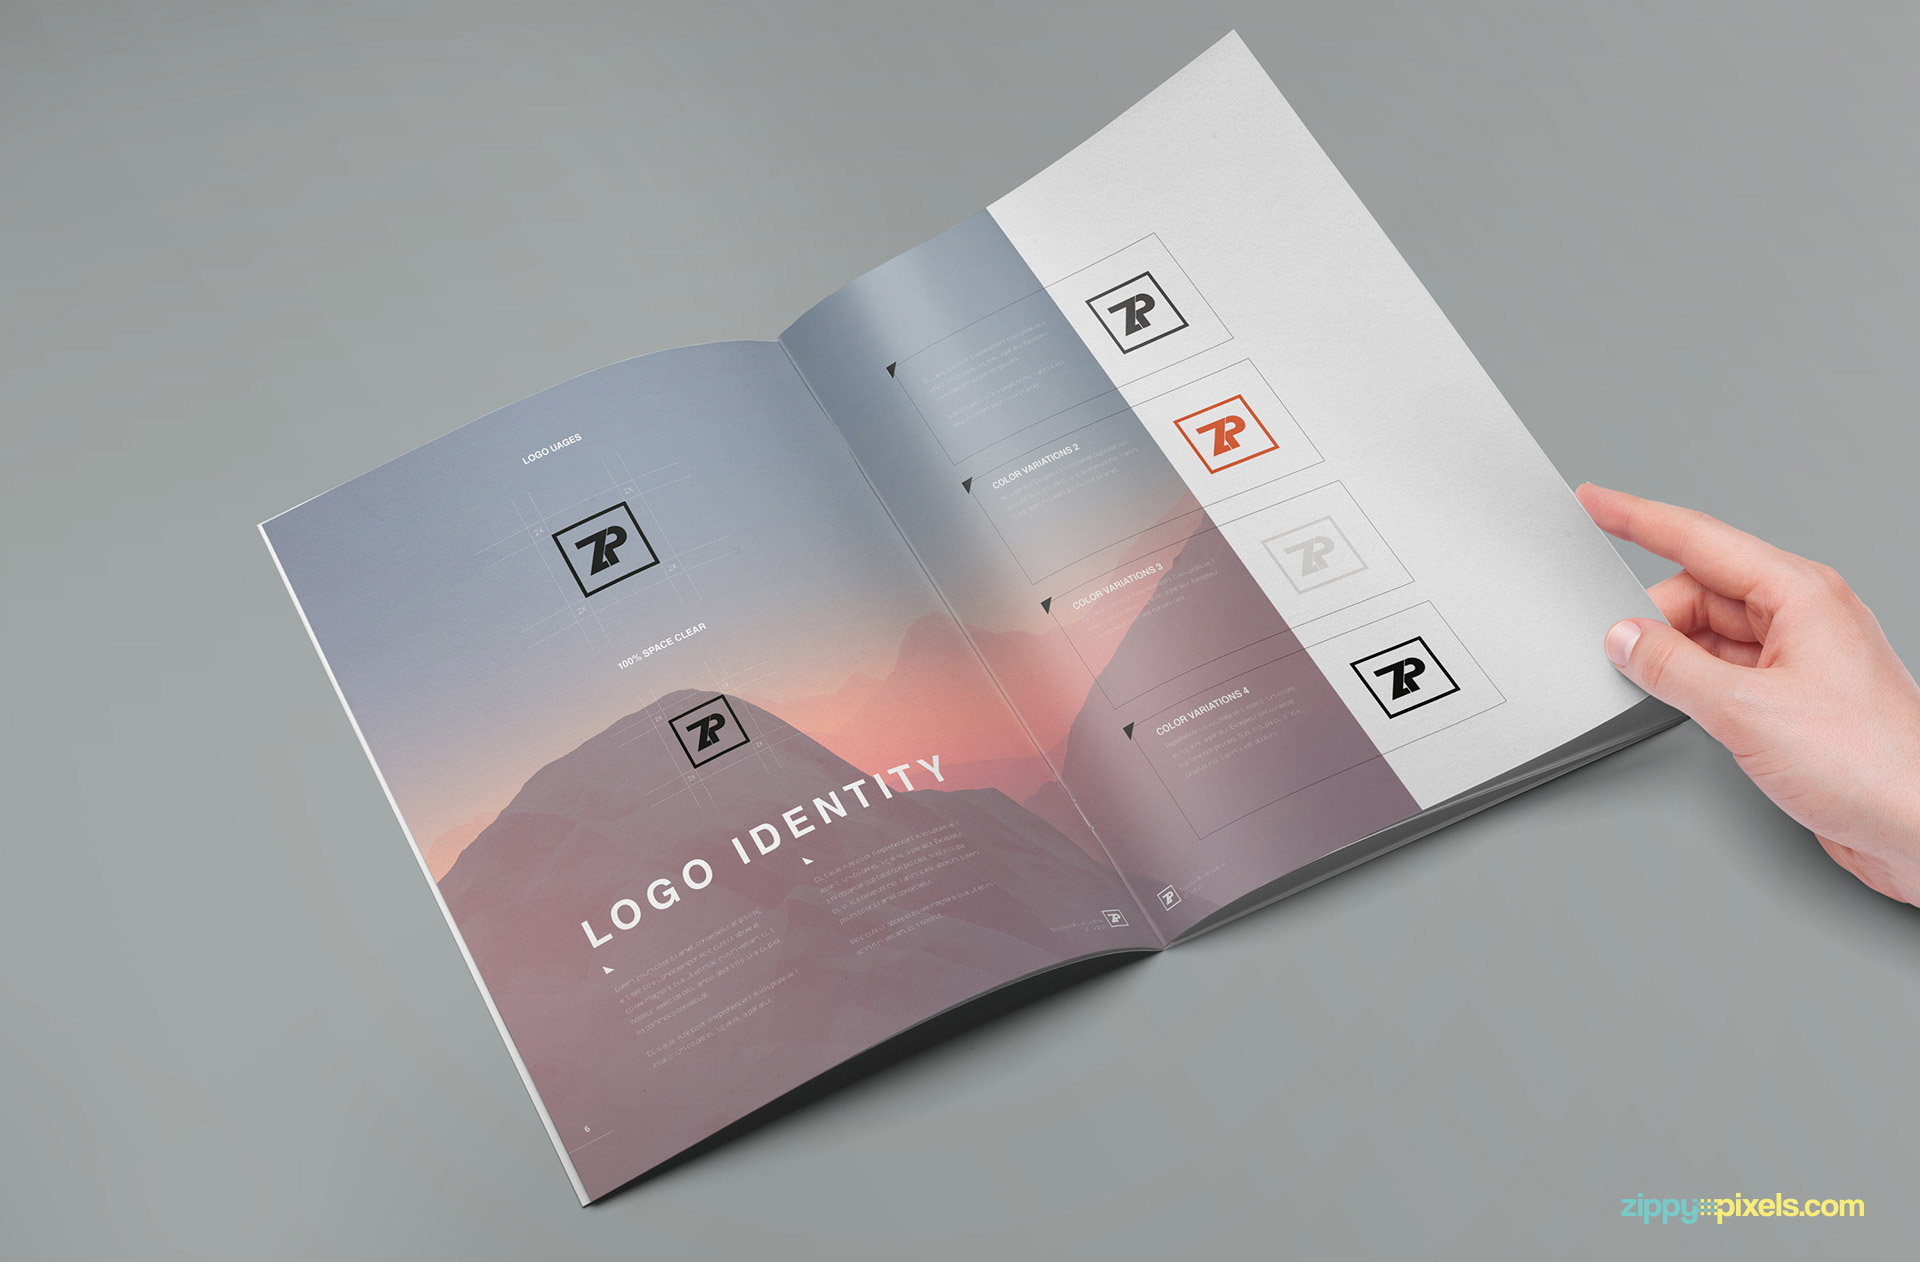 a brandbook made to promote your brand and impress your clients